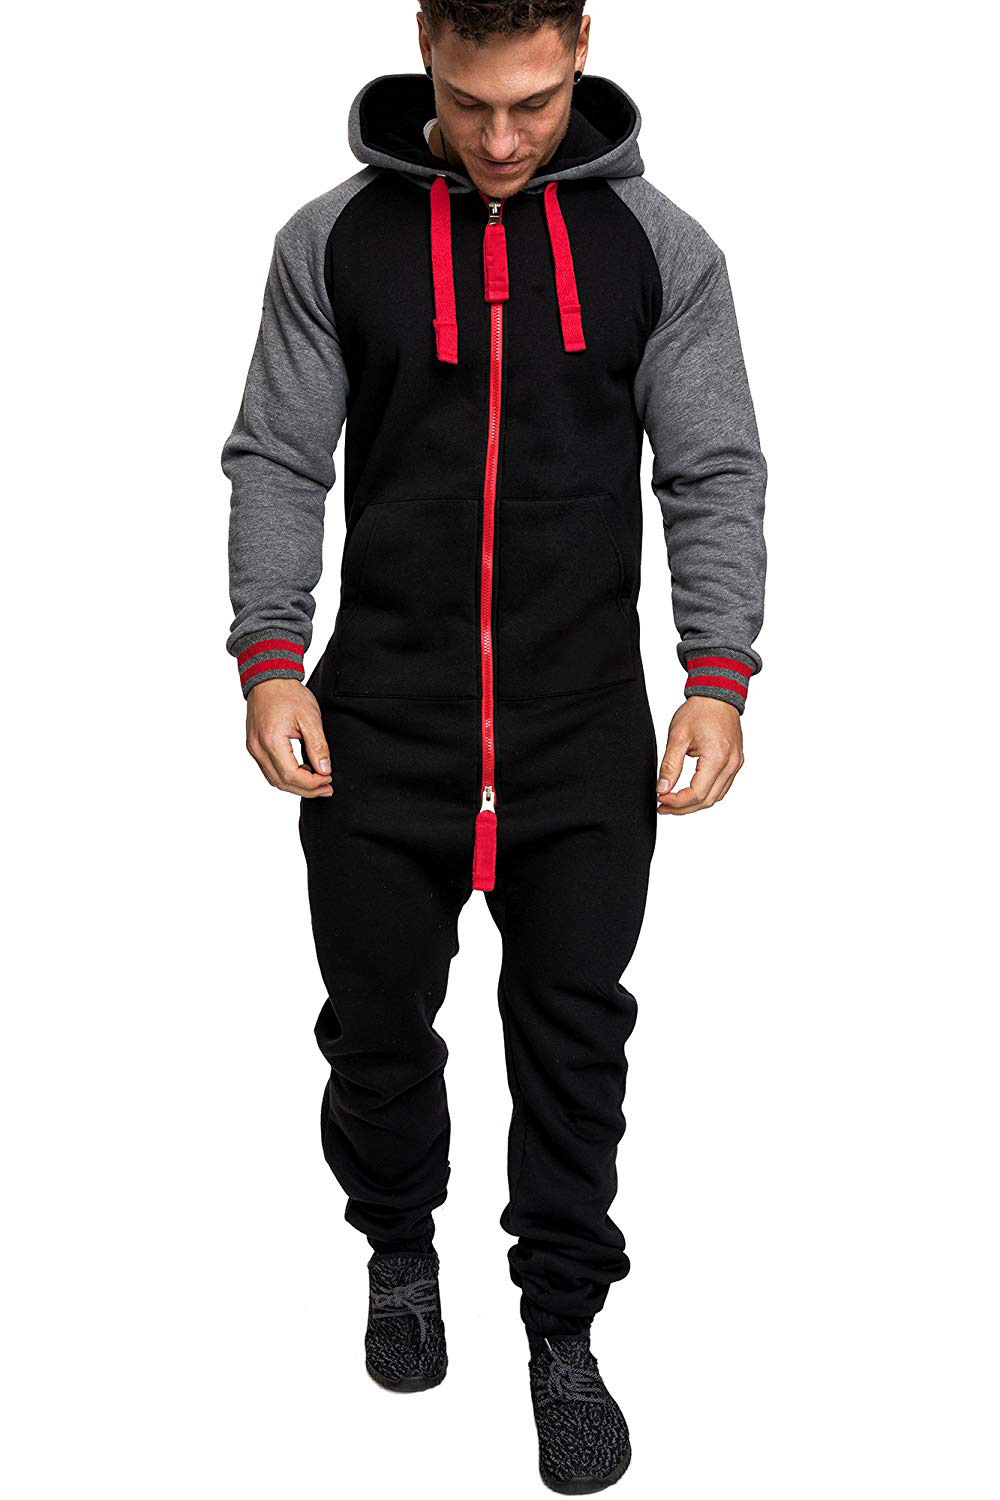 Casual Autumn Hooded Tracksuit Jumpsuit Long Pants Romper For Male Mens Fleece warm Overalls Sweatshirts Male Streetwear X9126 22